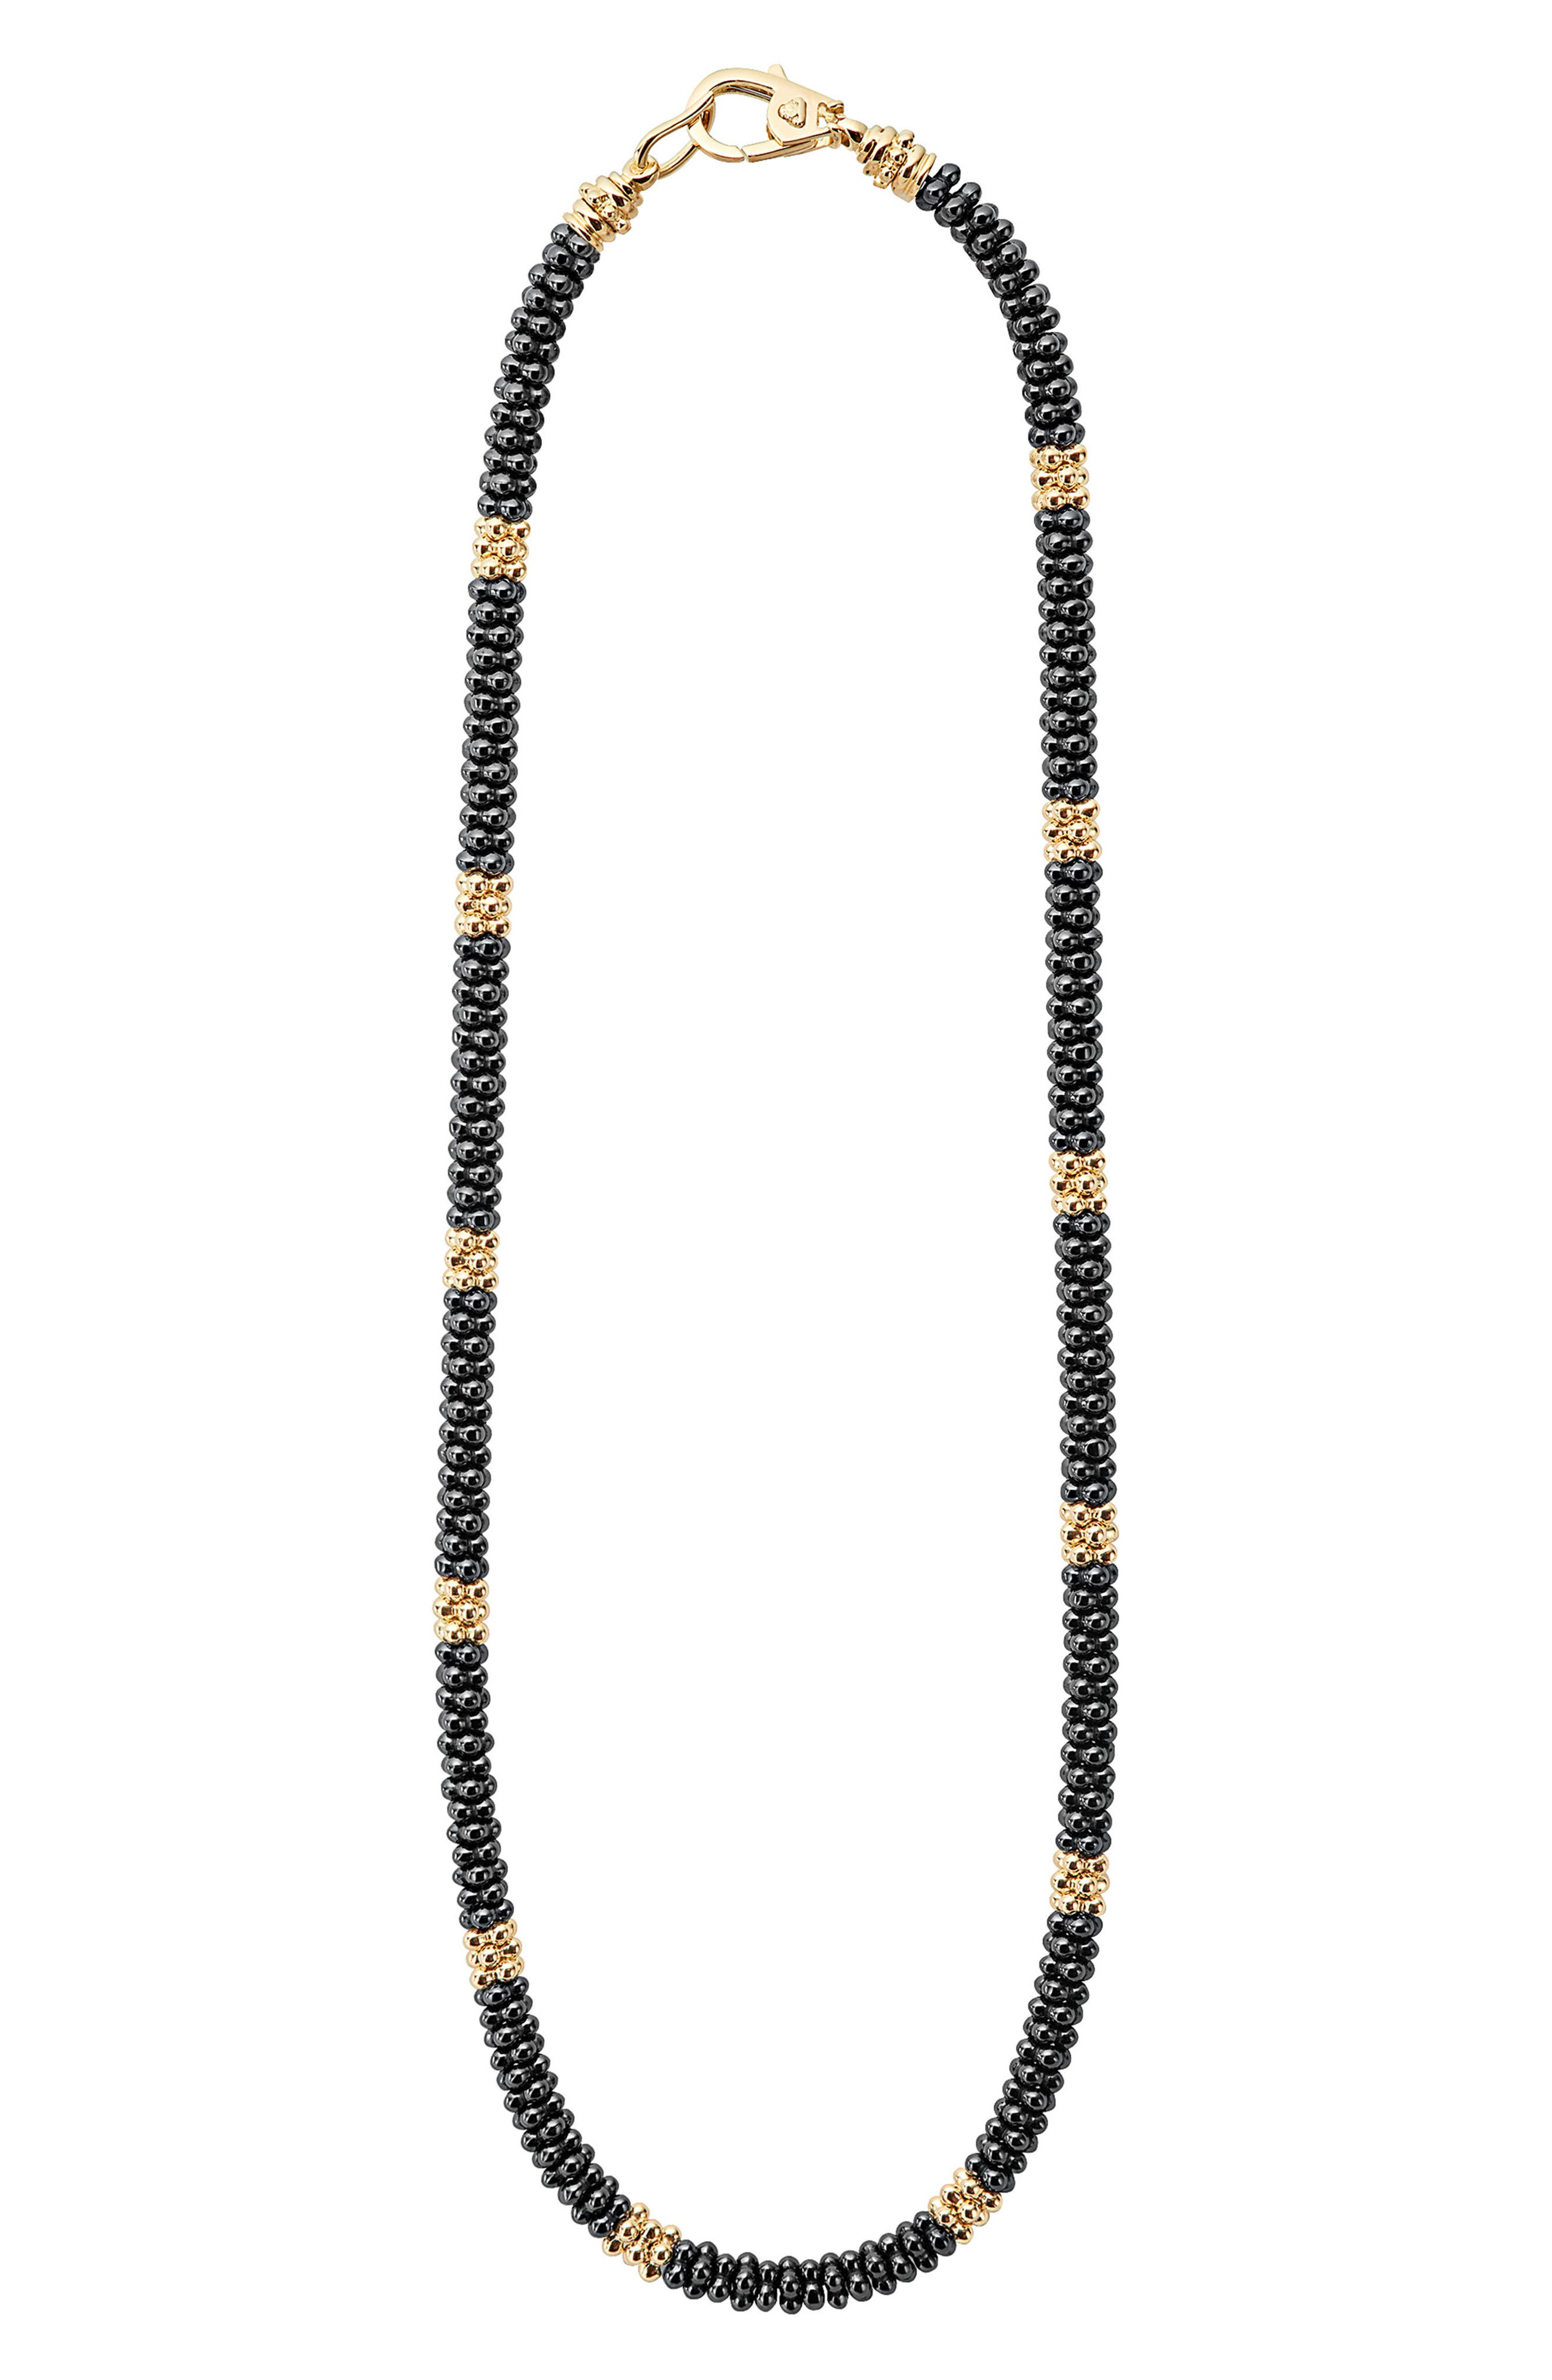 18K Gold & Black Caviar Bead Rope Necklace,                             Main thumbnail 1, color,                             Gold